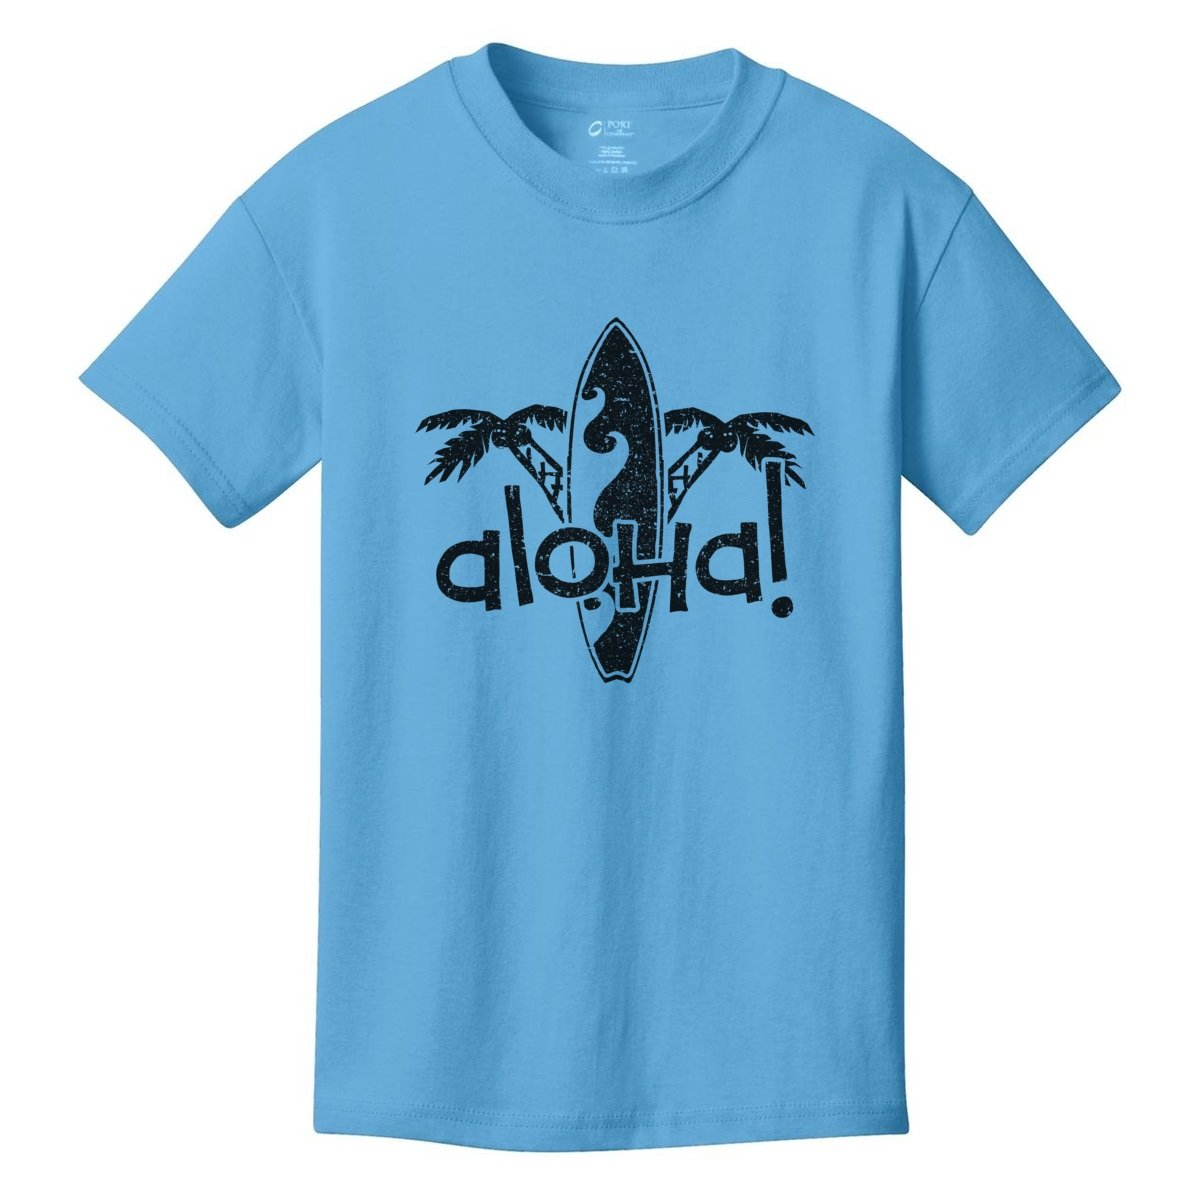 Digital T-Shirt Shop Boys Aloha Palm Trees and Surfboard T-Shirt Large AQUA BLUE